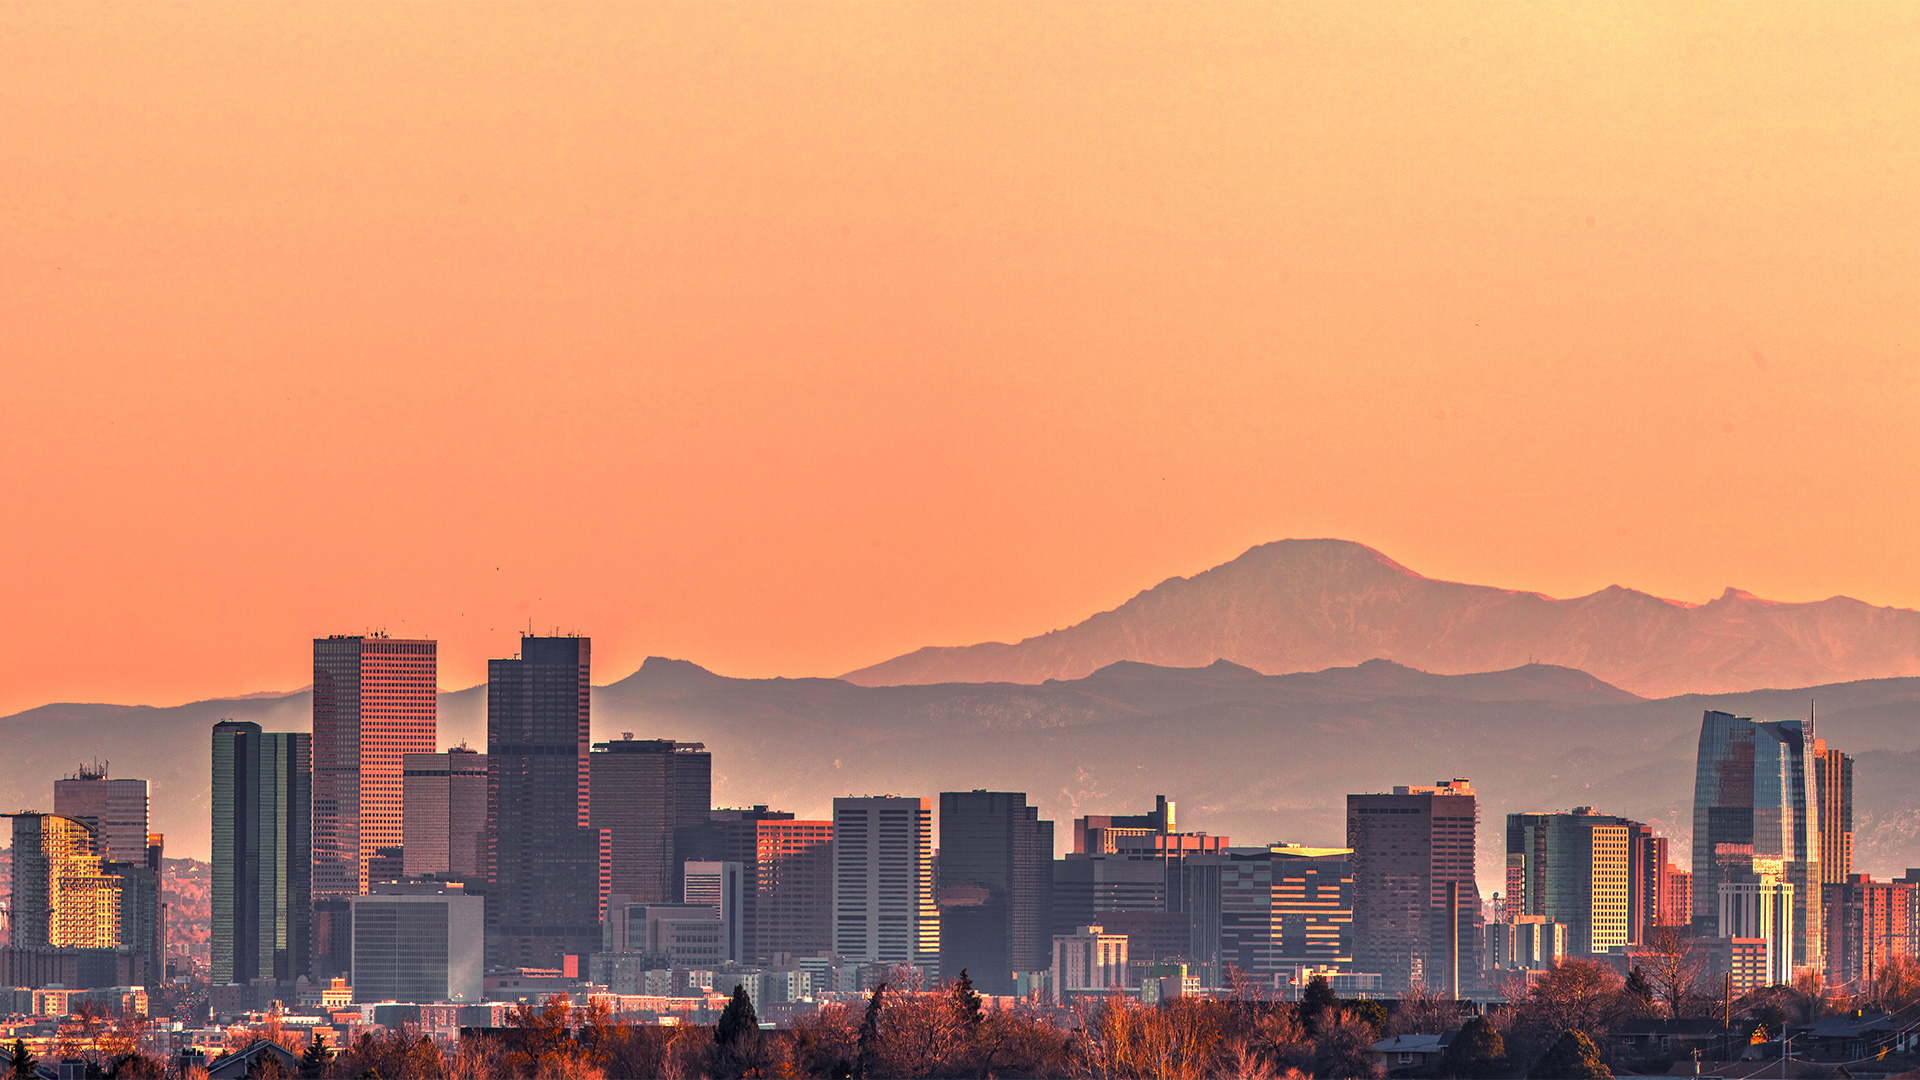 Will you be at ACE in Denver June 10th - 14th?